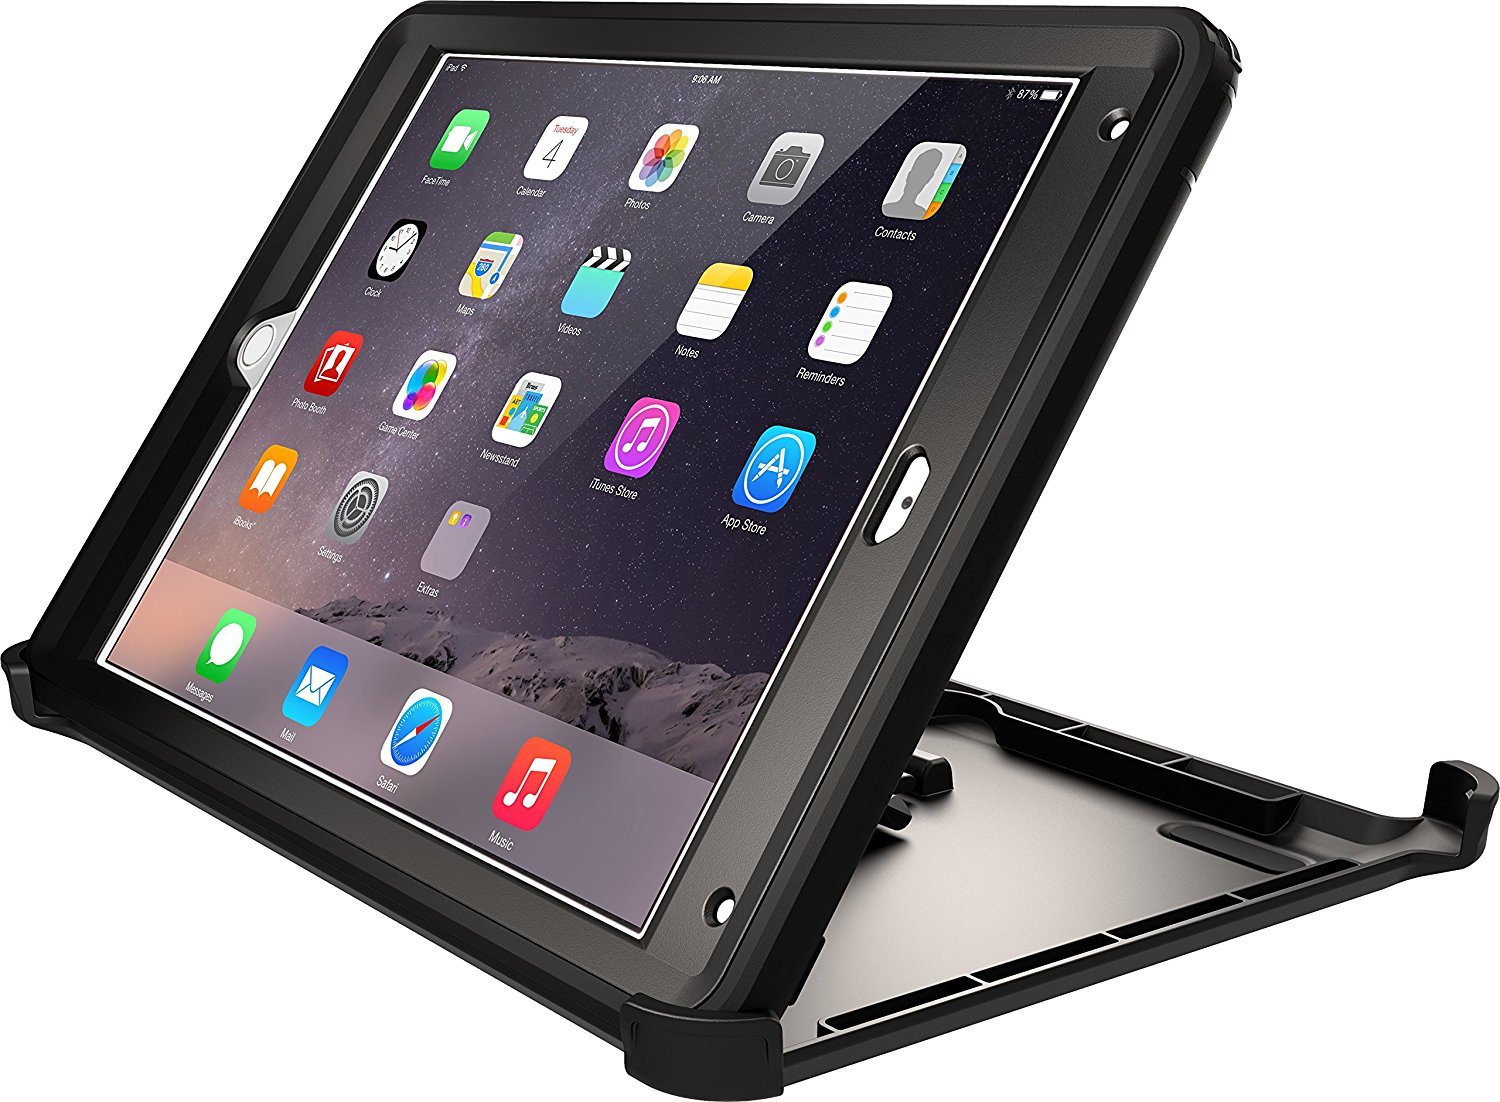 new concept 5bdc2 bbaa8 Details about OtterBox Defender Series Case & Stand for iPad Air 2 BLACK